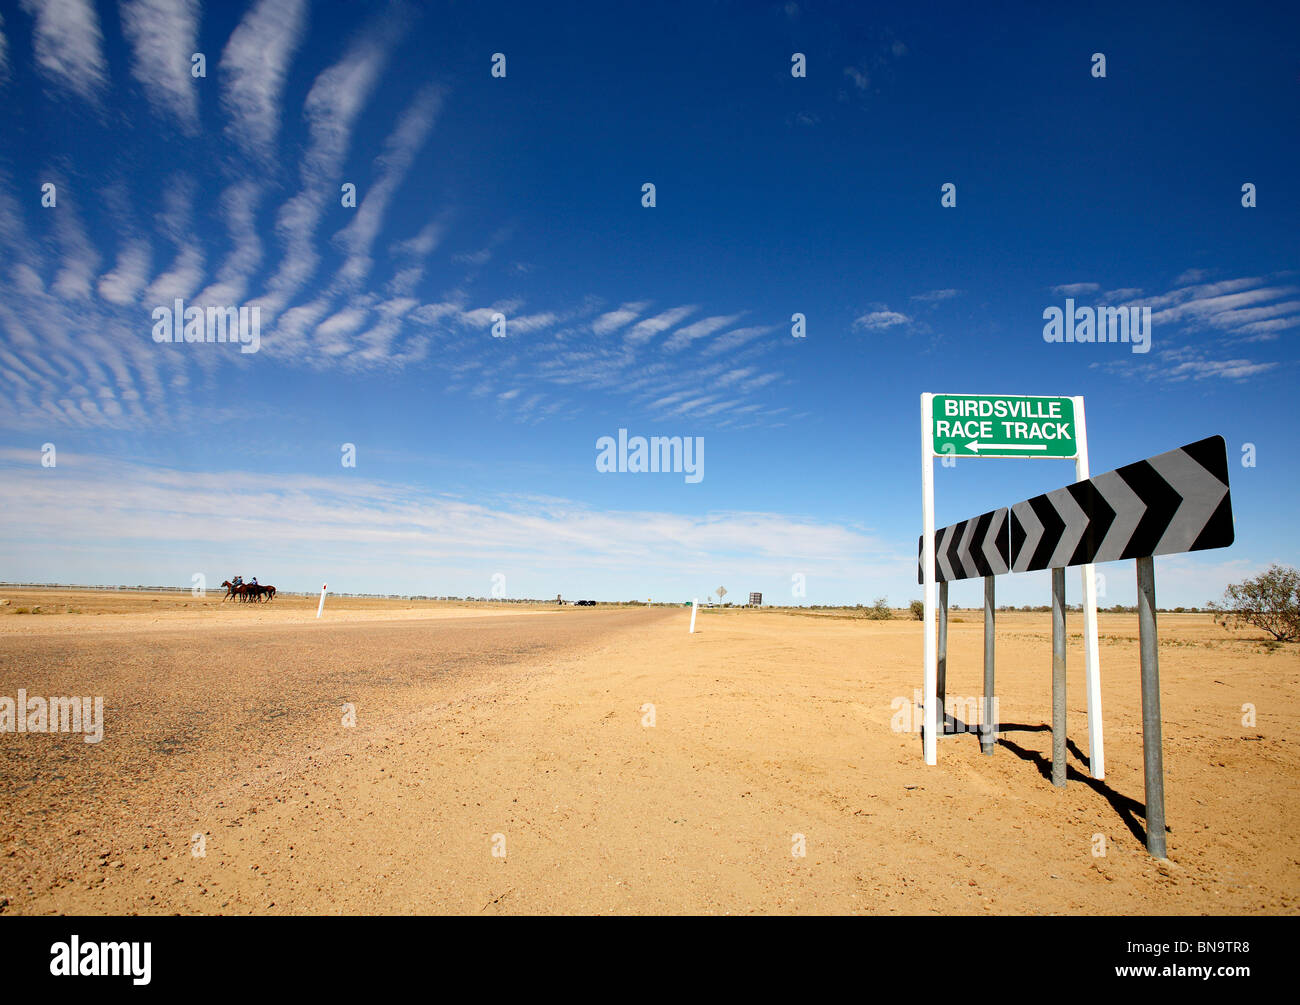 Birdsville race track sign Photo Stock